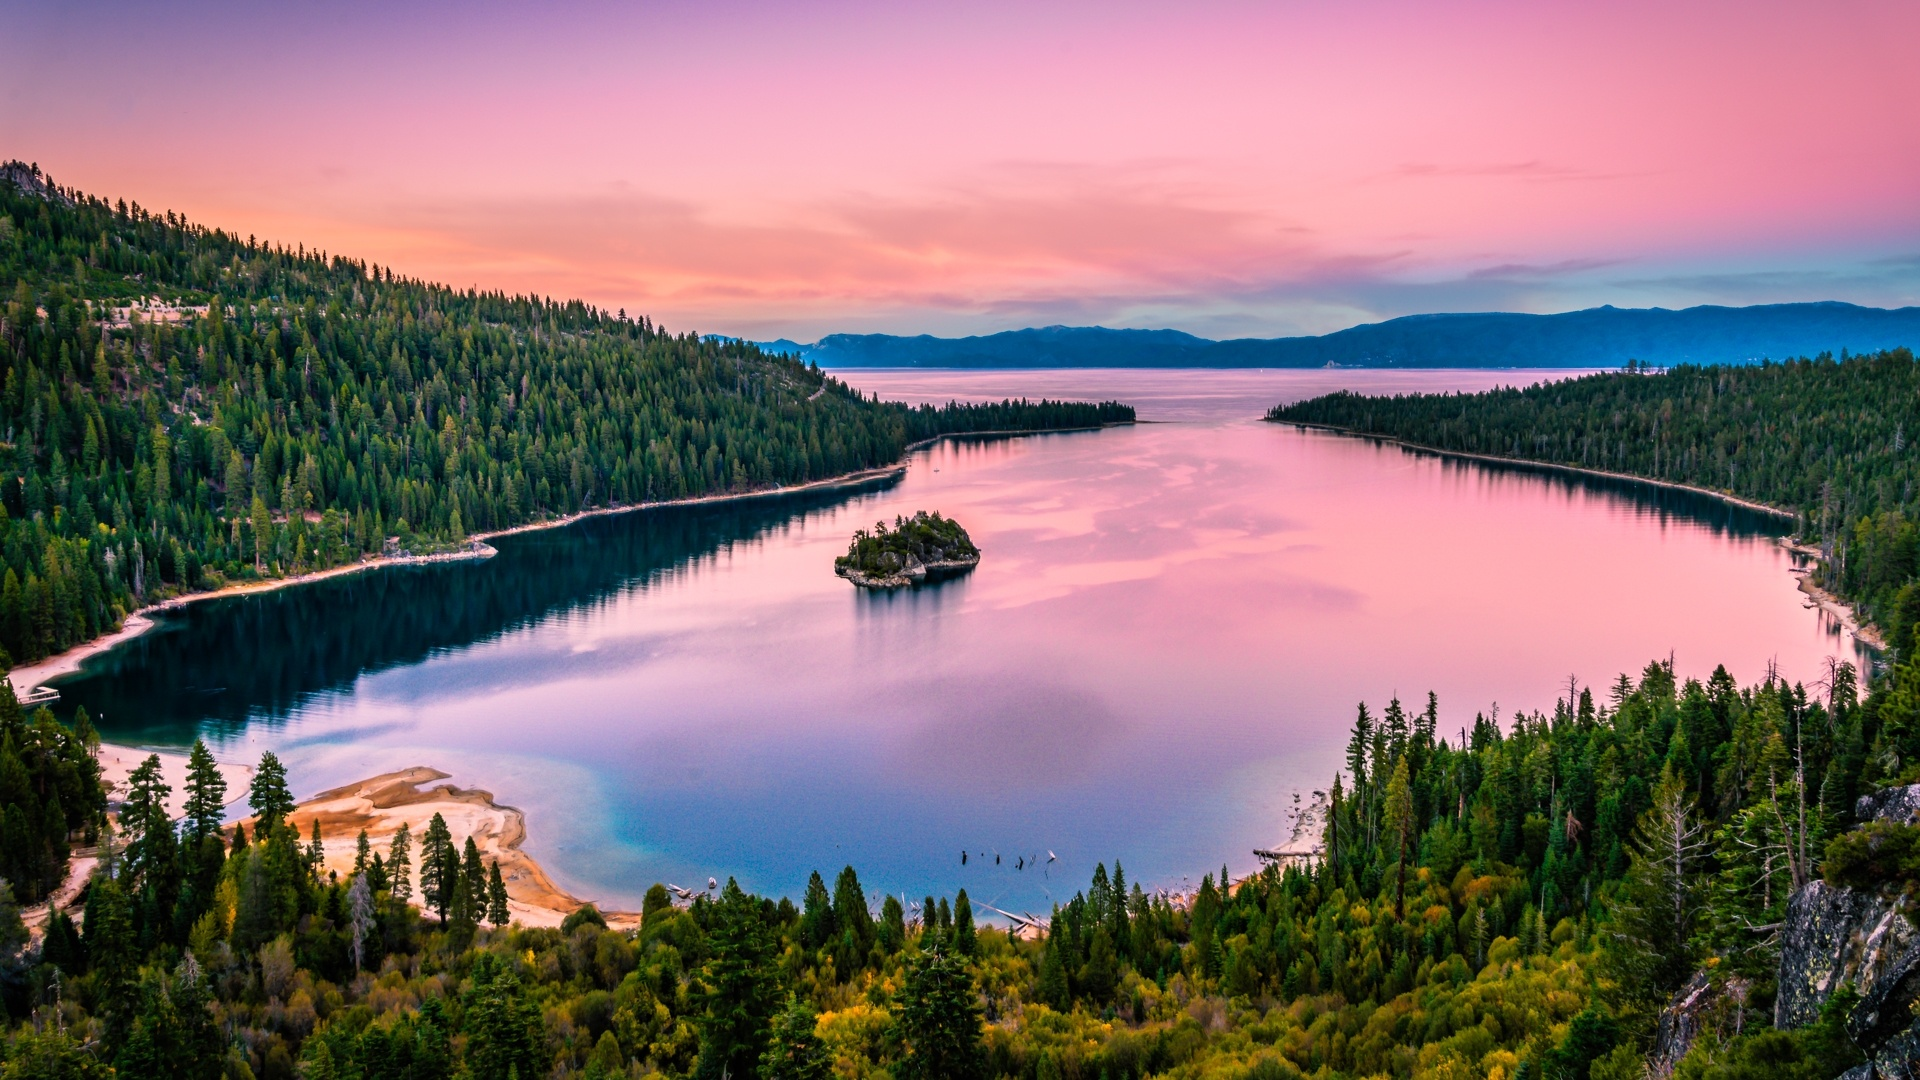 Lake Tahoe Wallpaper theme